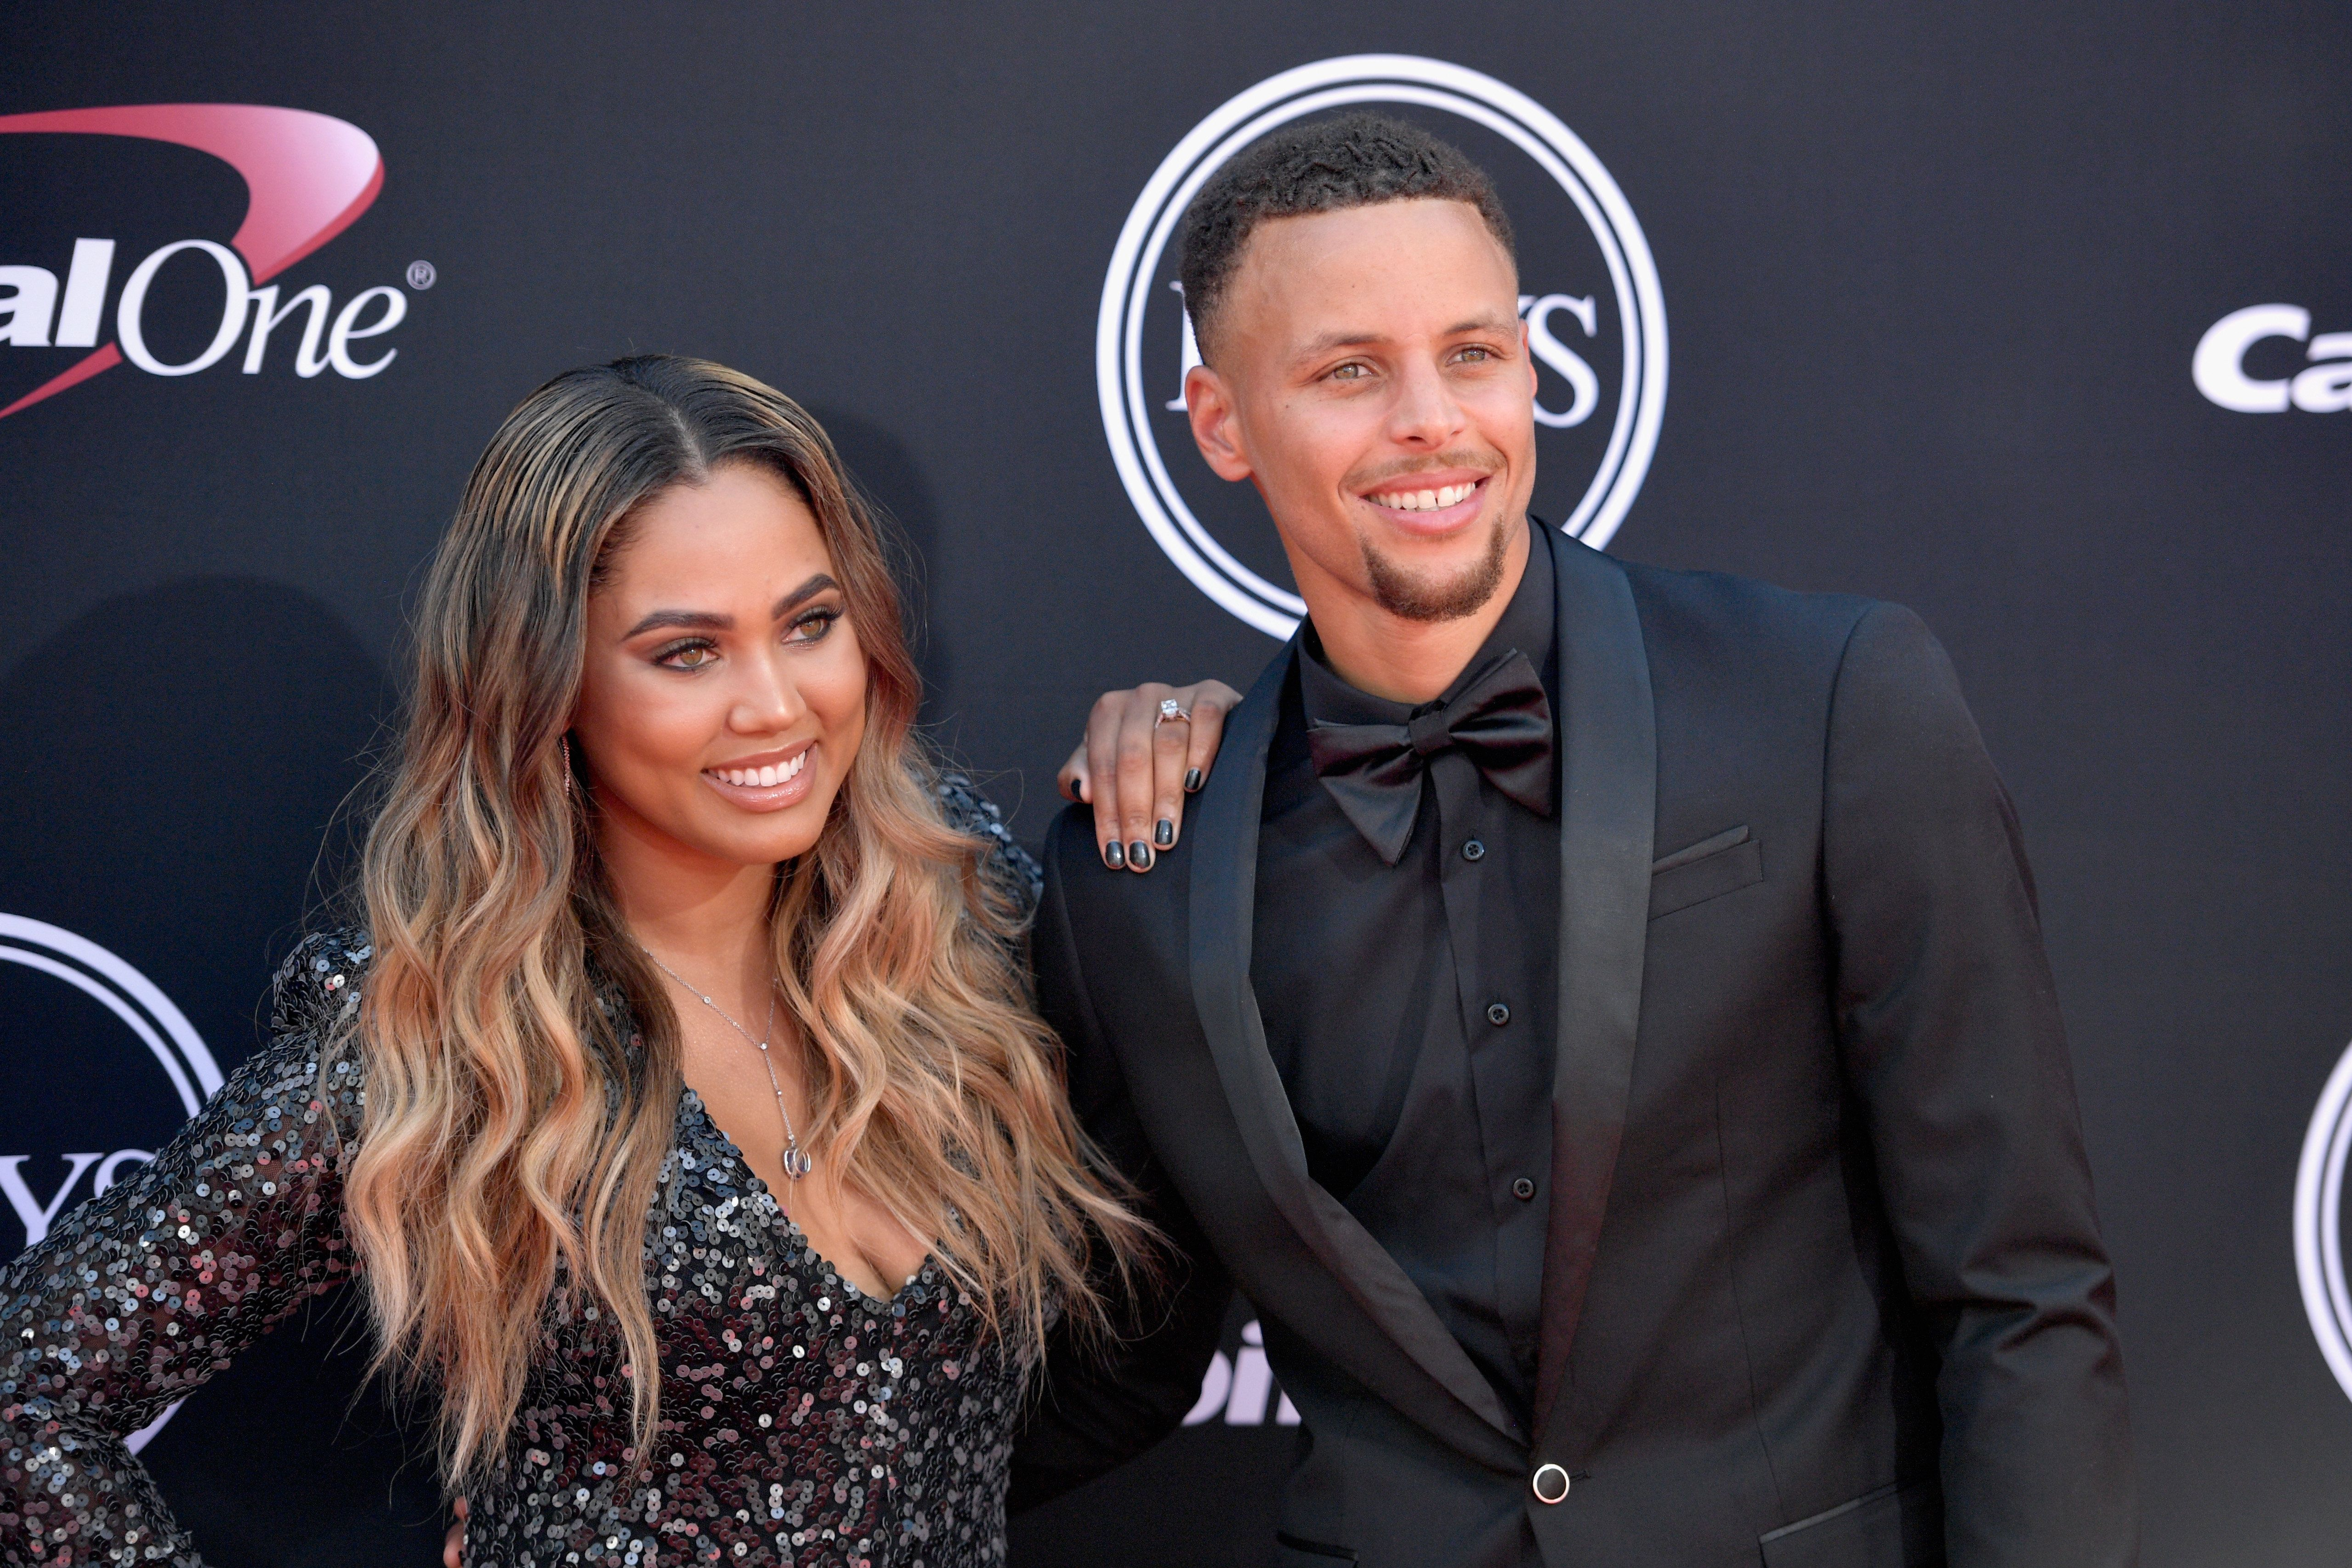 LOS ANGELES, CA - JULY 12:  NBA player Steph Curry (R) and Ayesha Curry attend The 2017 ESPYS at Microsoft Theater on July 12, 2017 in Los Angeles, California.  (Photo by Matt Winkelmeyer/Getty Images)